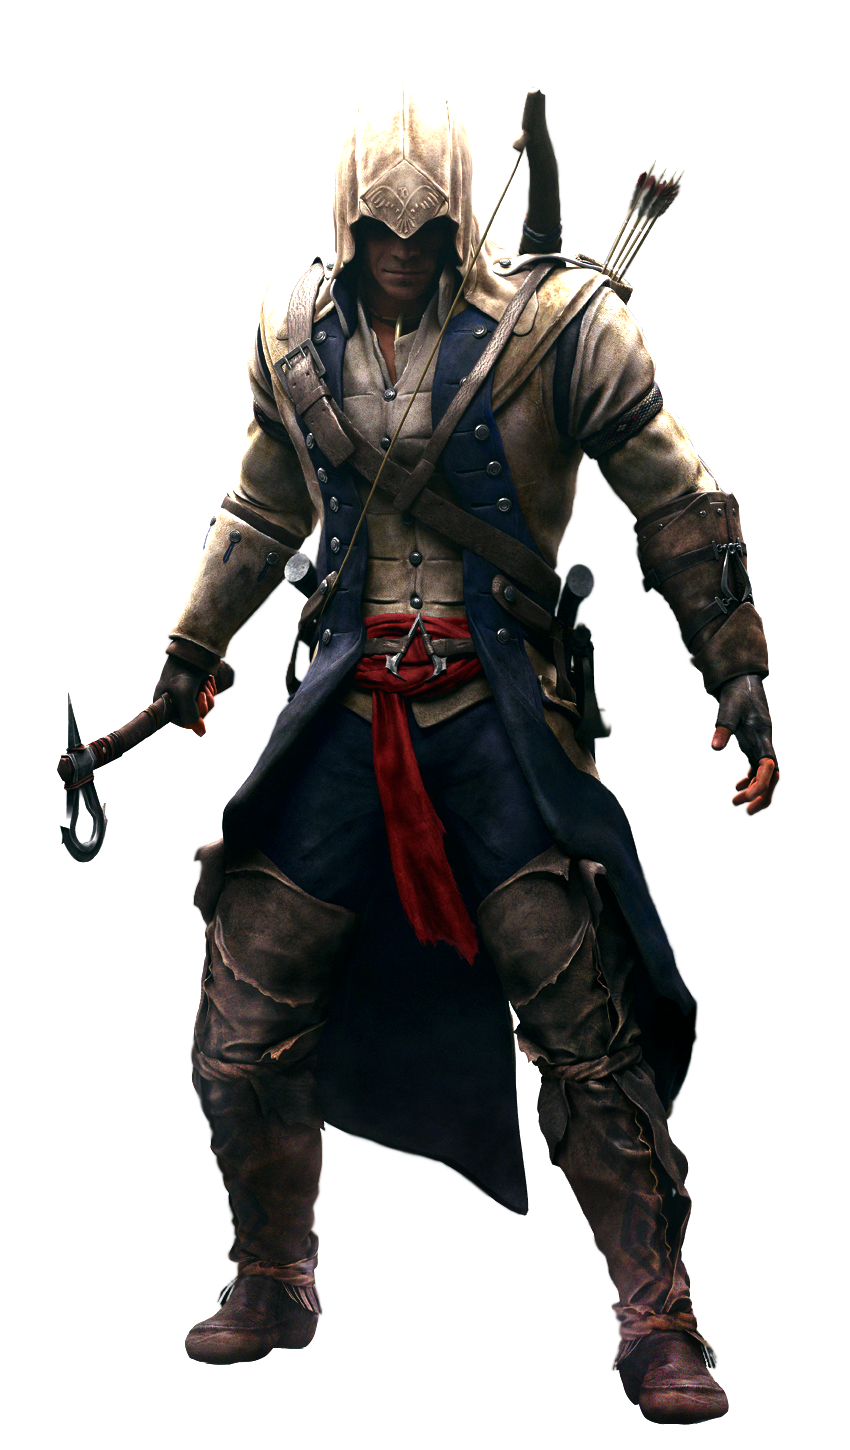 Assassins Creed Attacked Warrior Image PNG 27530